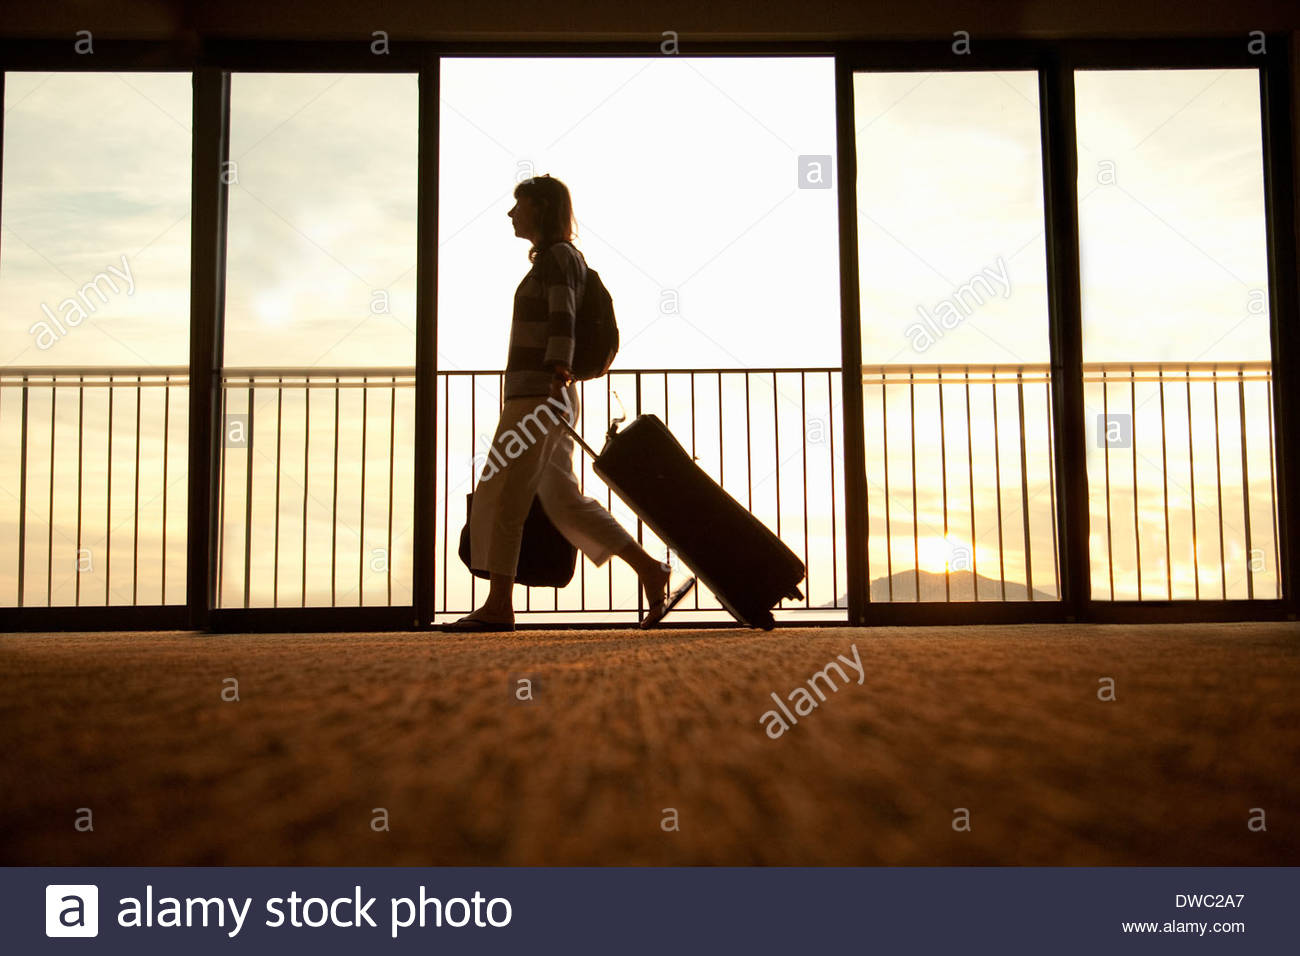 Woman walking through airport with wheeled suitcase - Stock Image